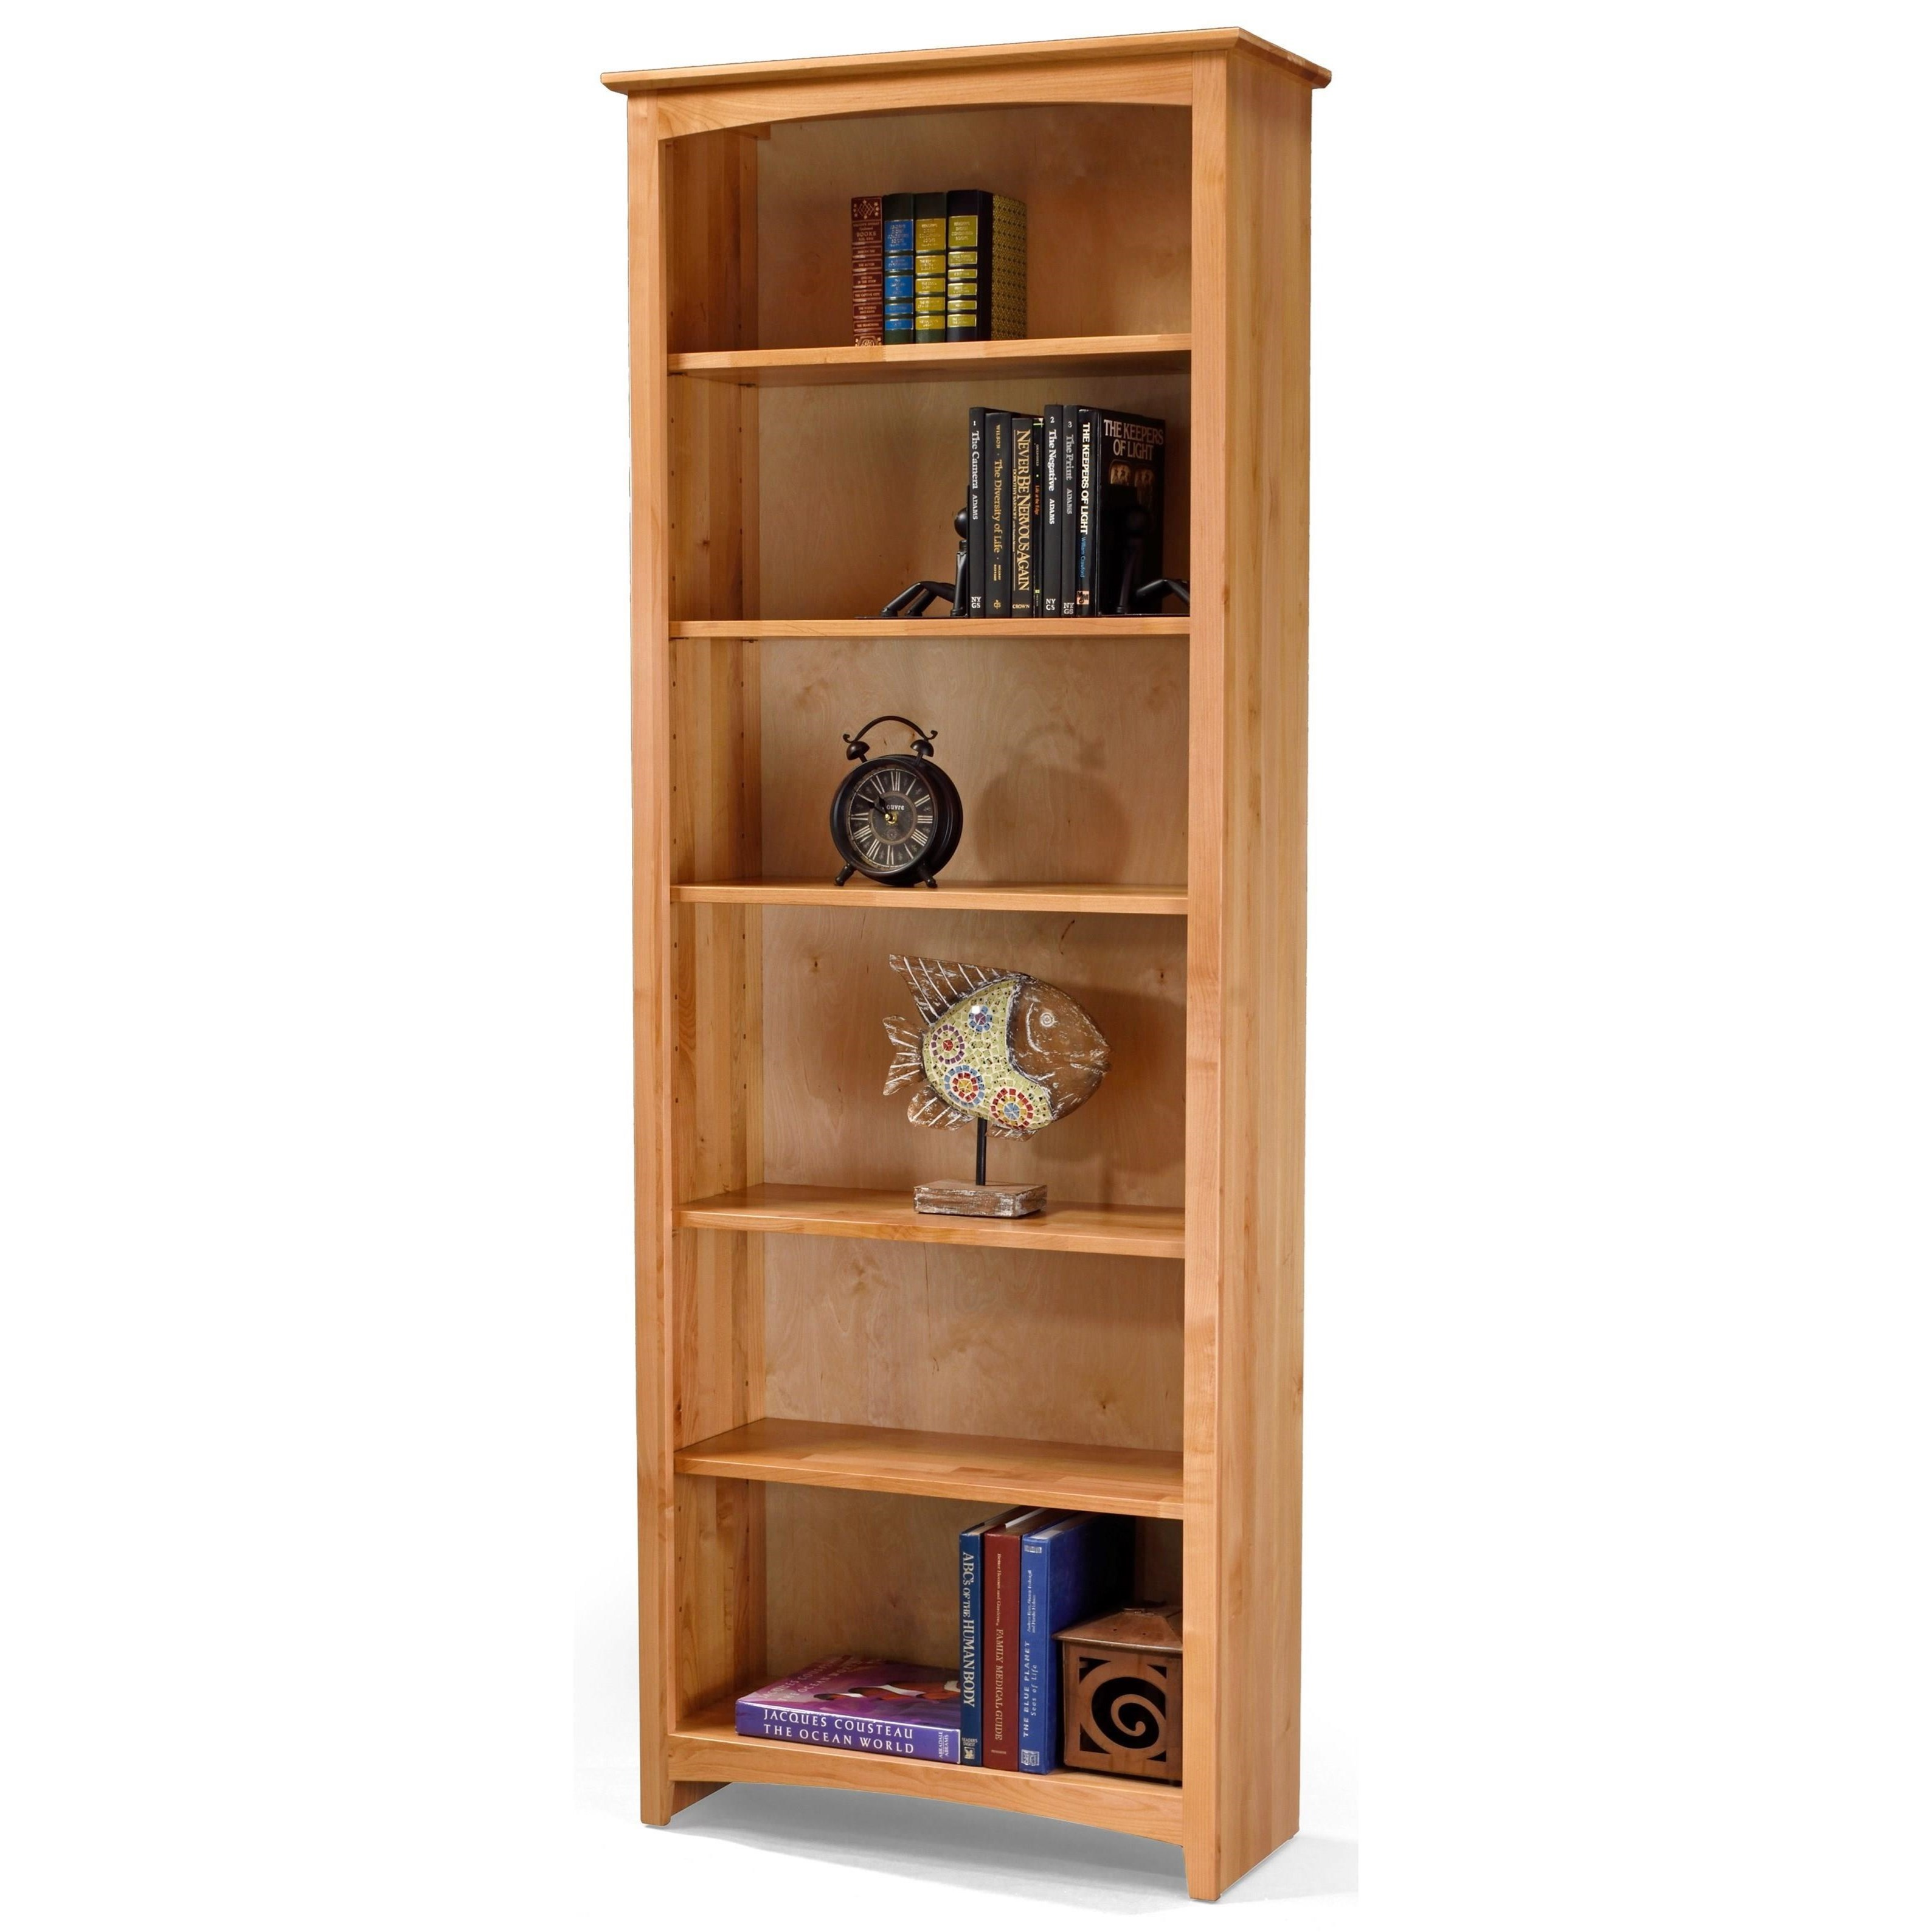 Bookcases Alder Bookcase by Archbold Furniture at Gill Brothers Furniture